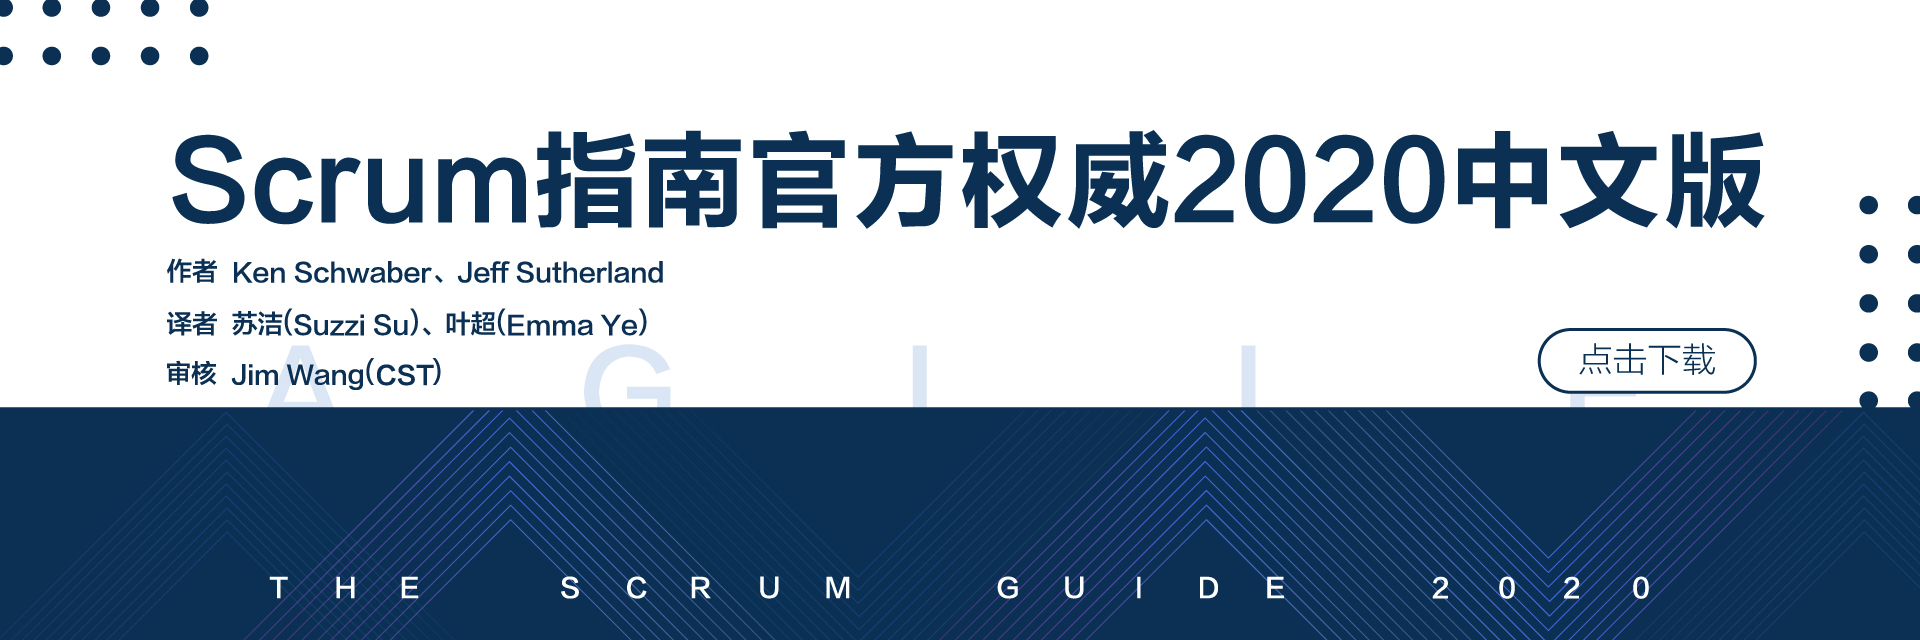 2020-scrum-guide-banner